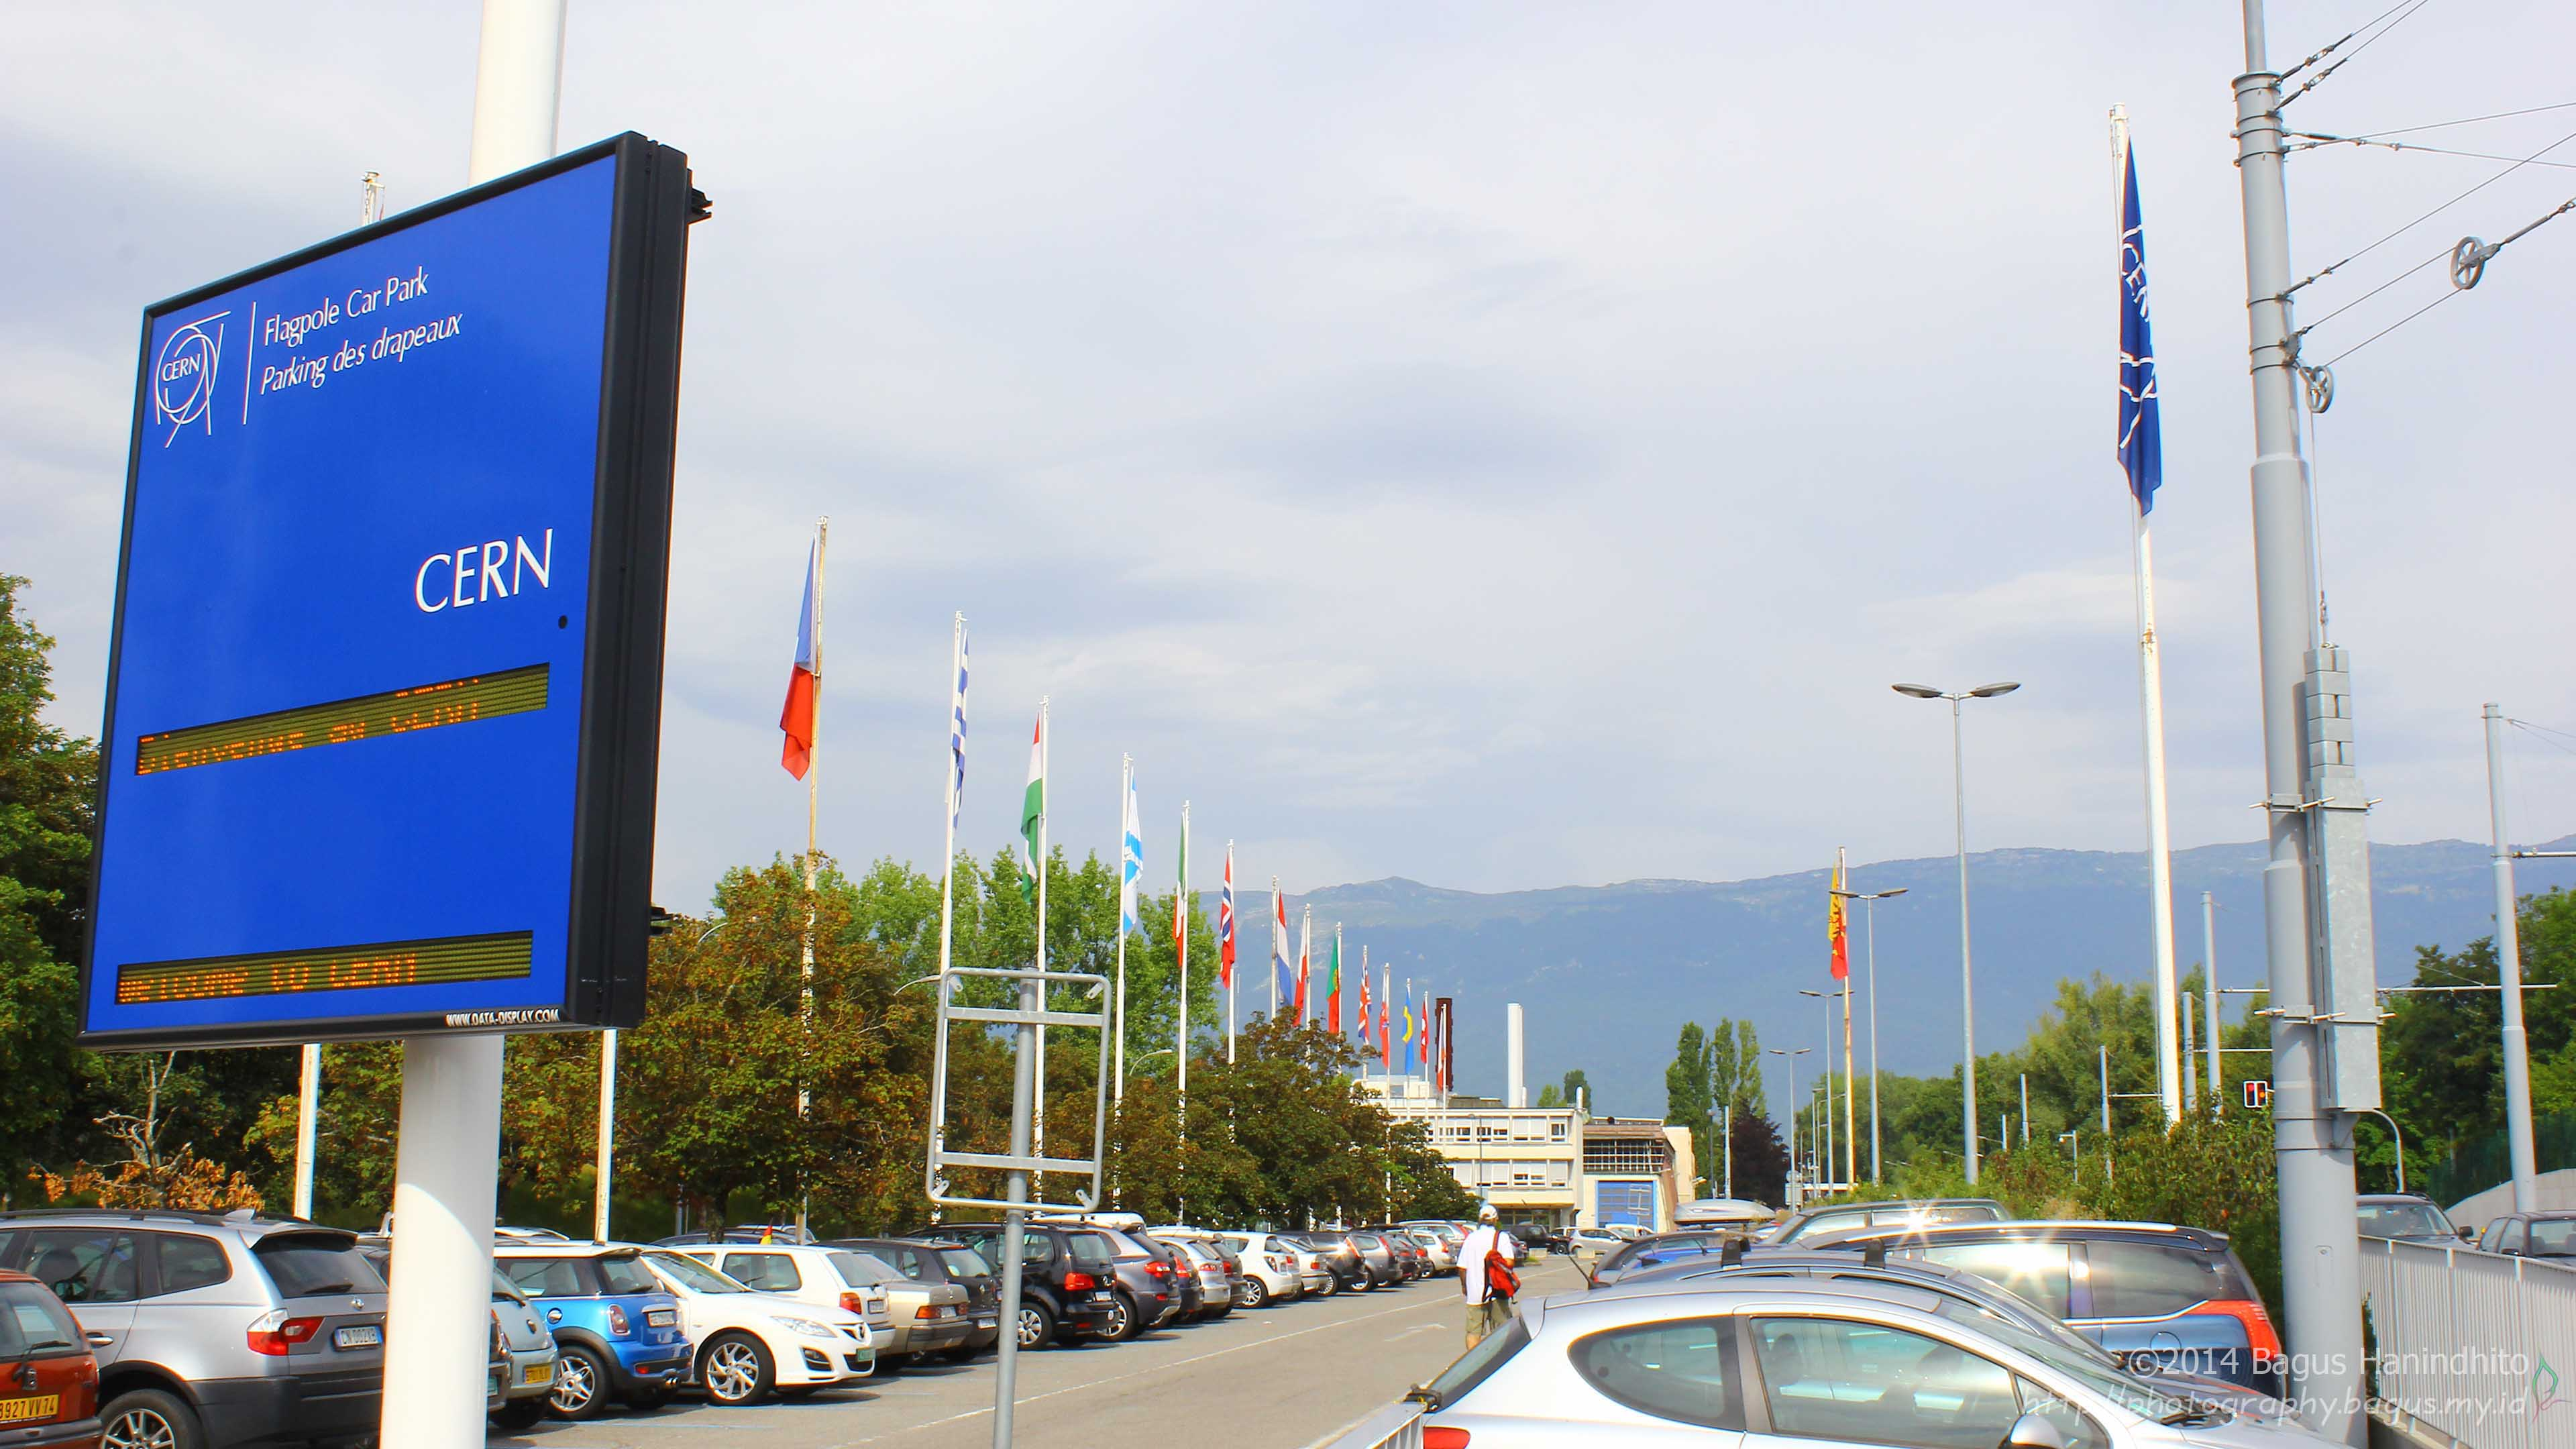 CERN Meyrin Visitor Parking Lot. It is located beside the Rue de Meyrin. The reception building is nearby this parking lot and you can also visit the Globe of Science and Innovation by crossing the street. There are also a bus stop (Bus Y) and a tram stop (Tram 18).